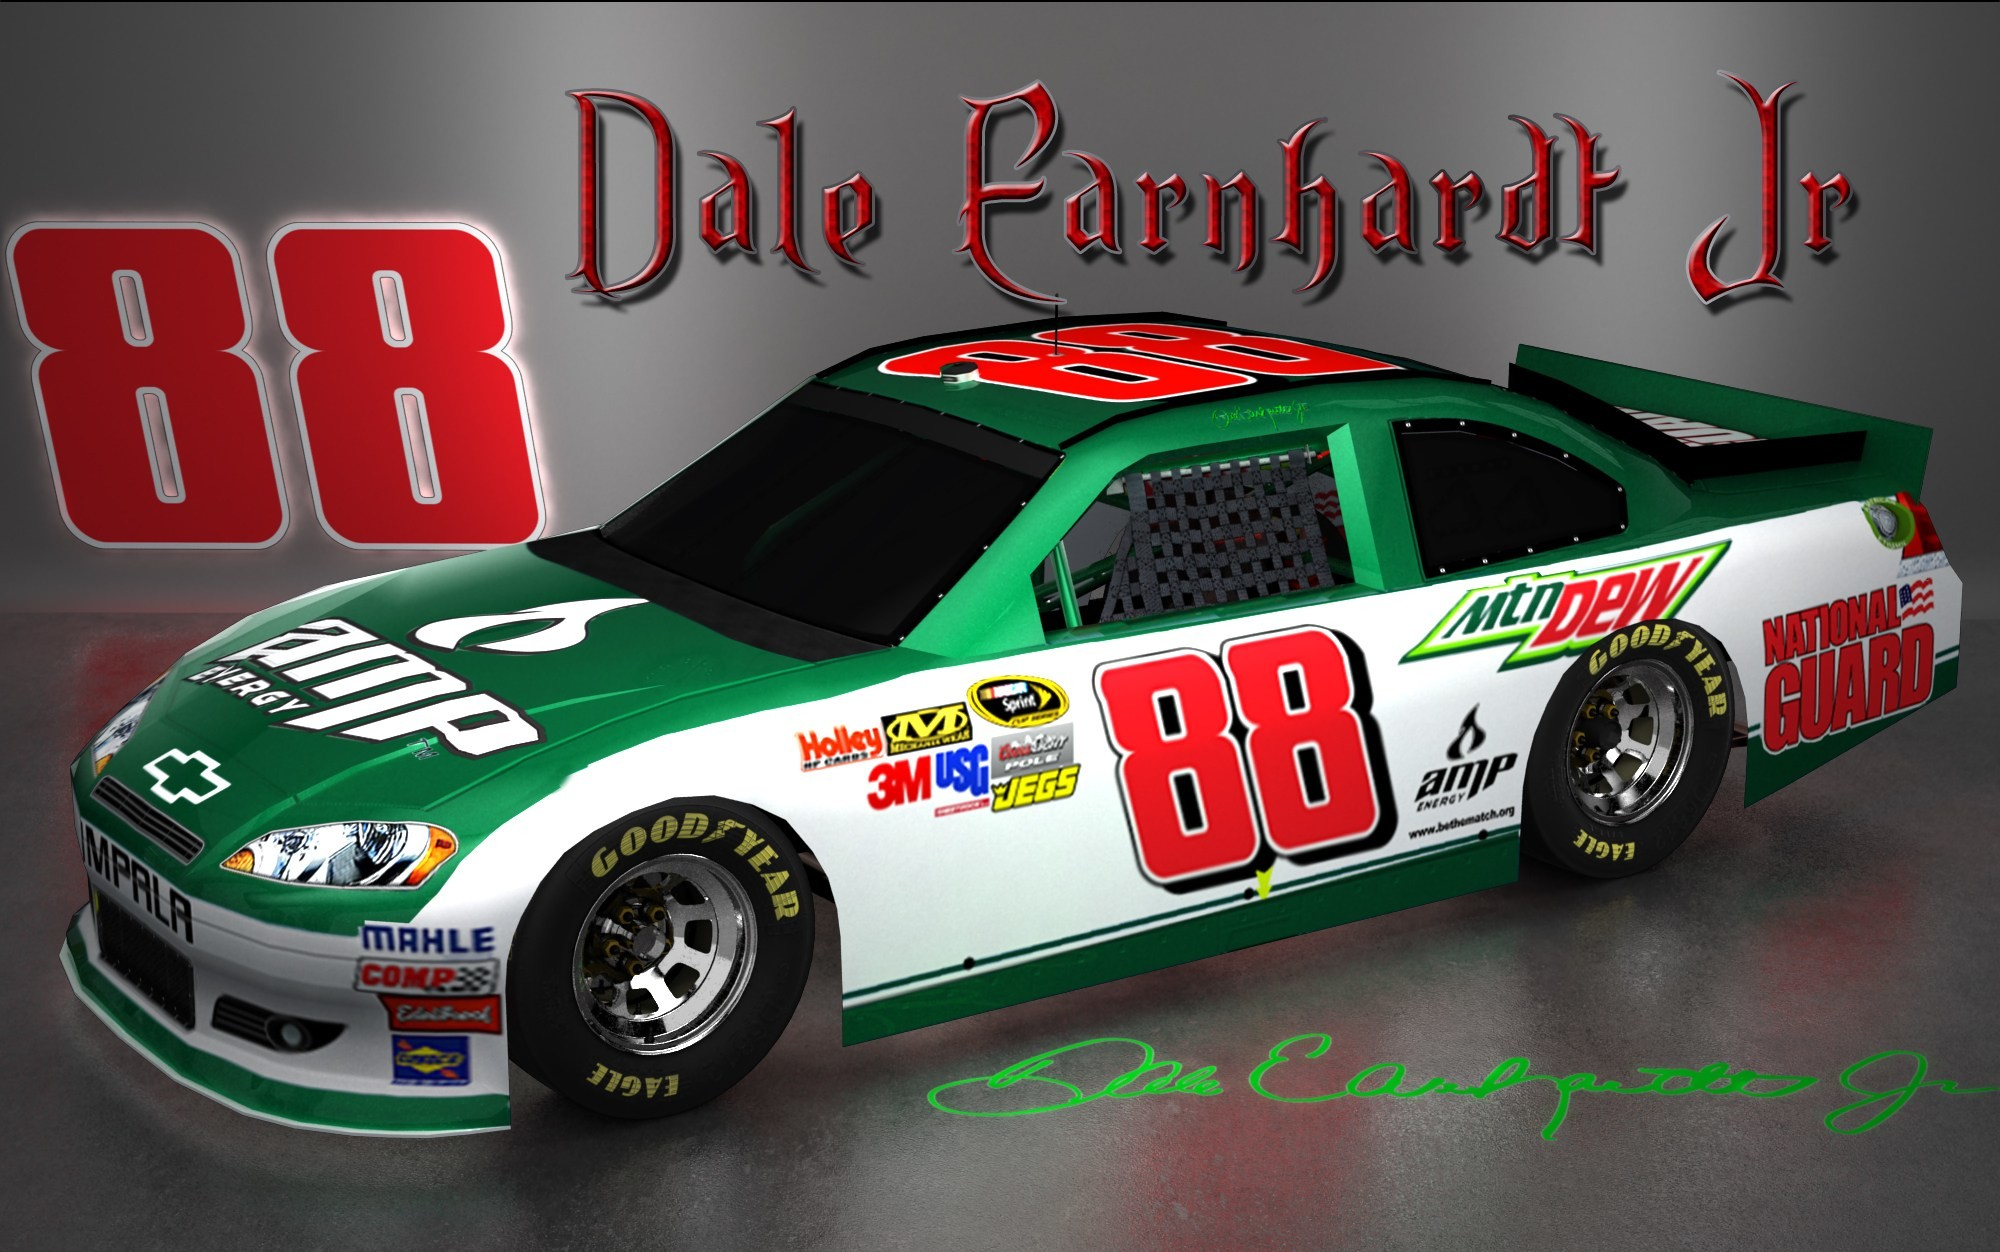 Dale Earnhardt Jr 88 Wallpaper – JnsrmgkSB i-Journal